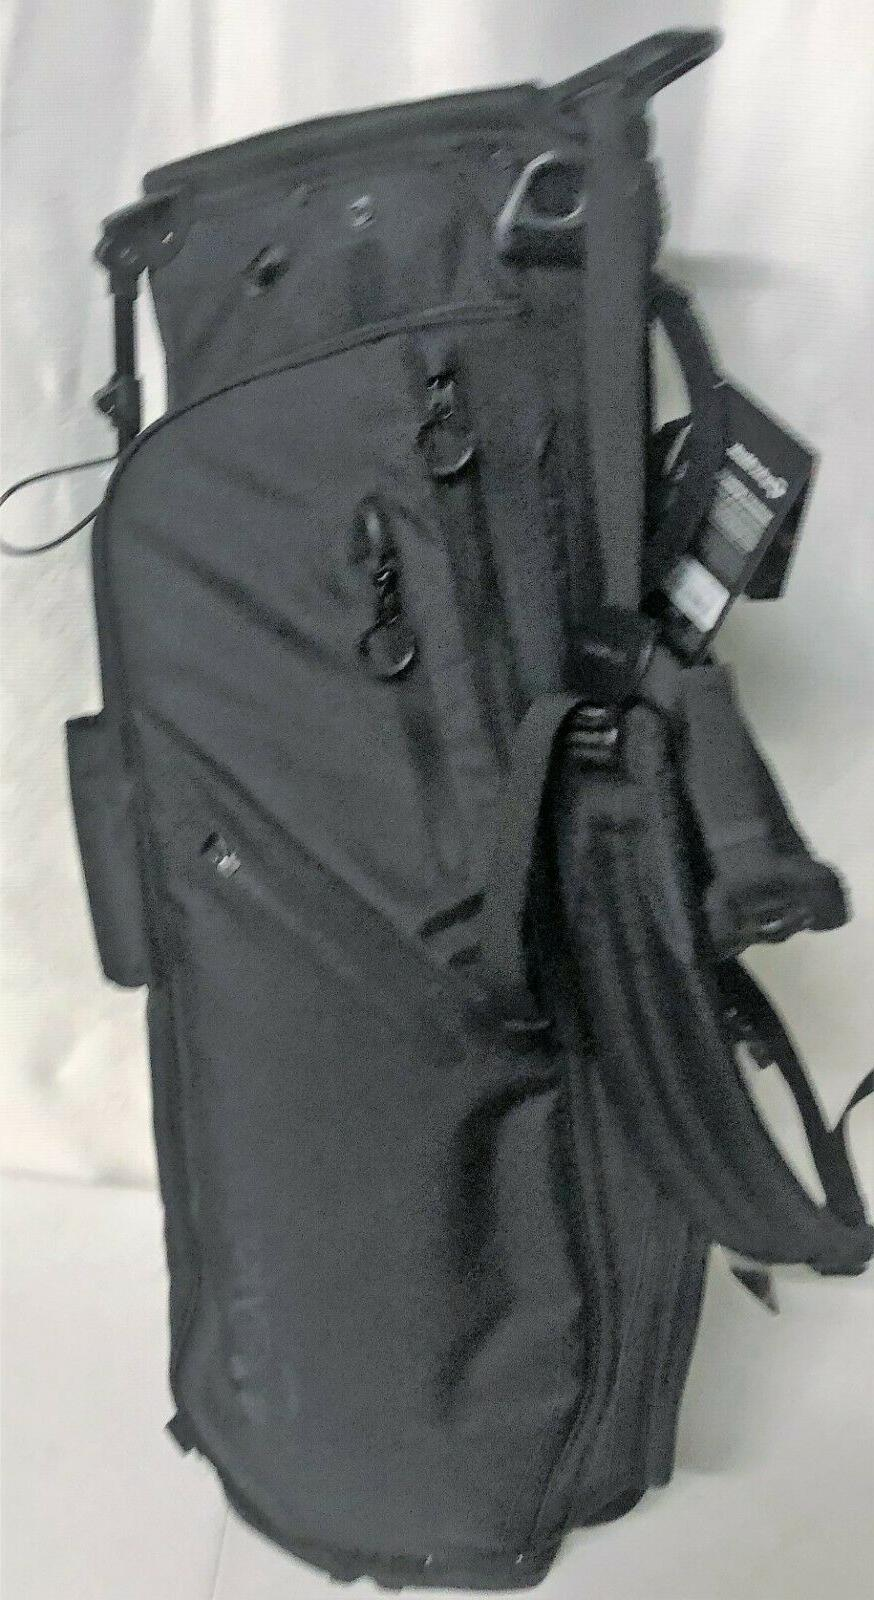 TaylorMade FlexTech Bag - New With Tags